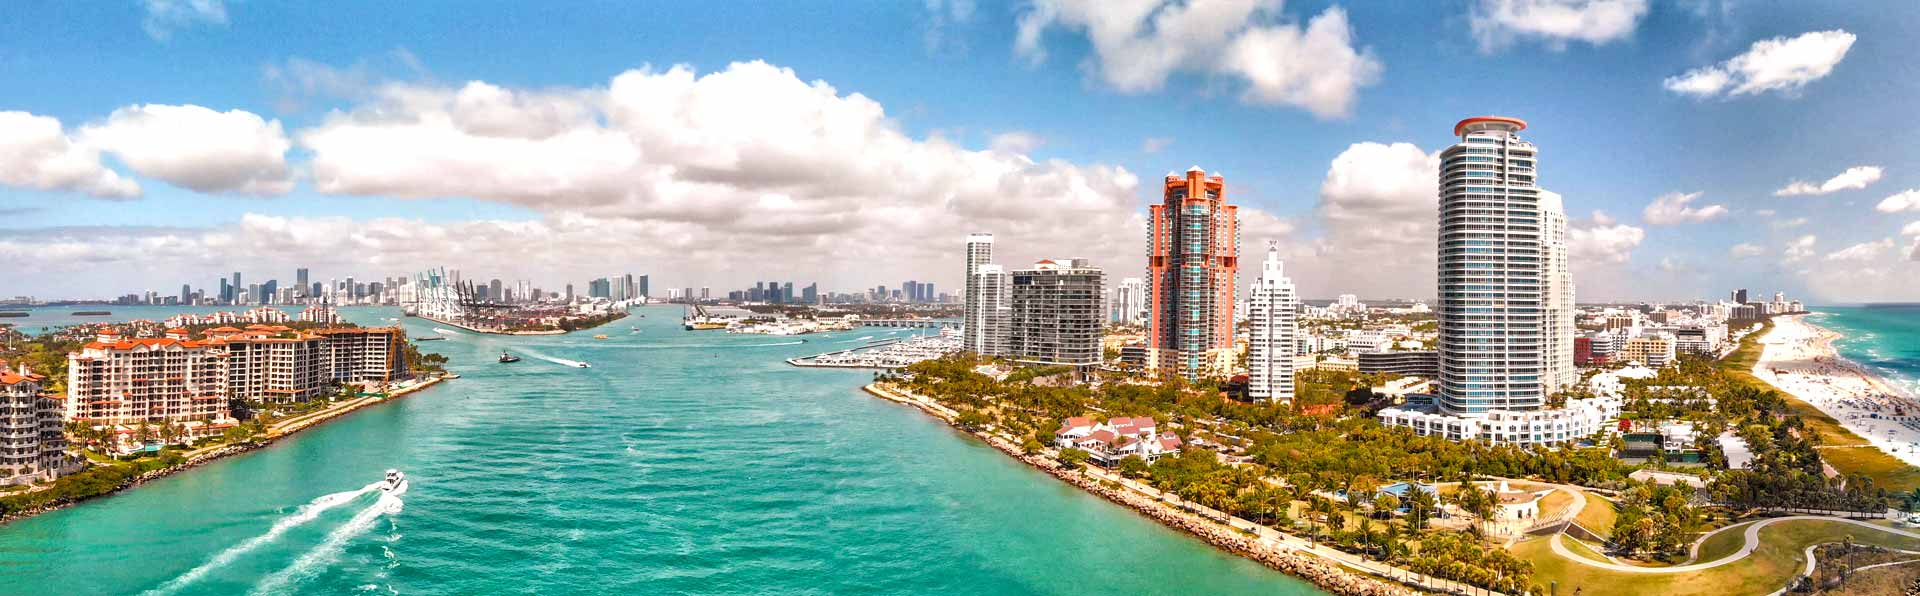 Miami, FL City Skyline